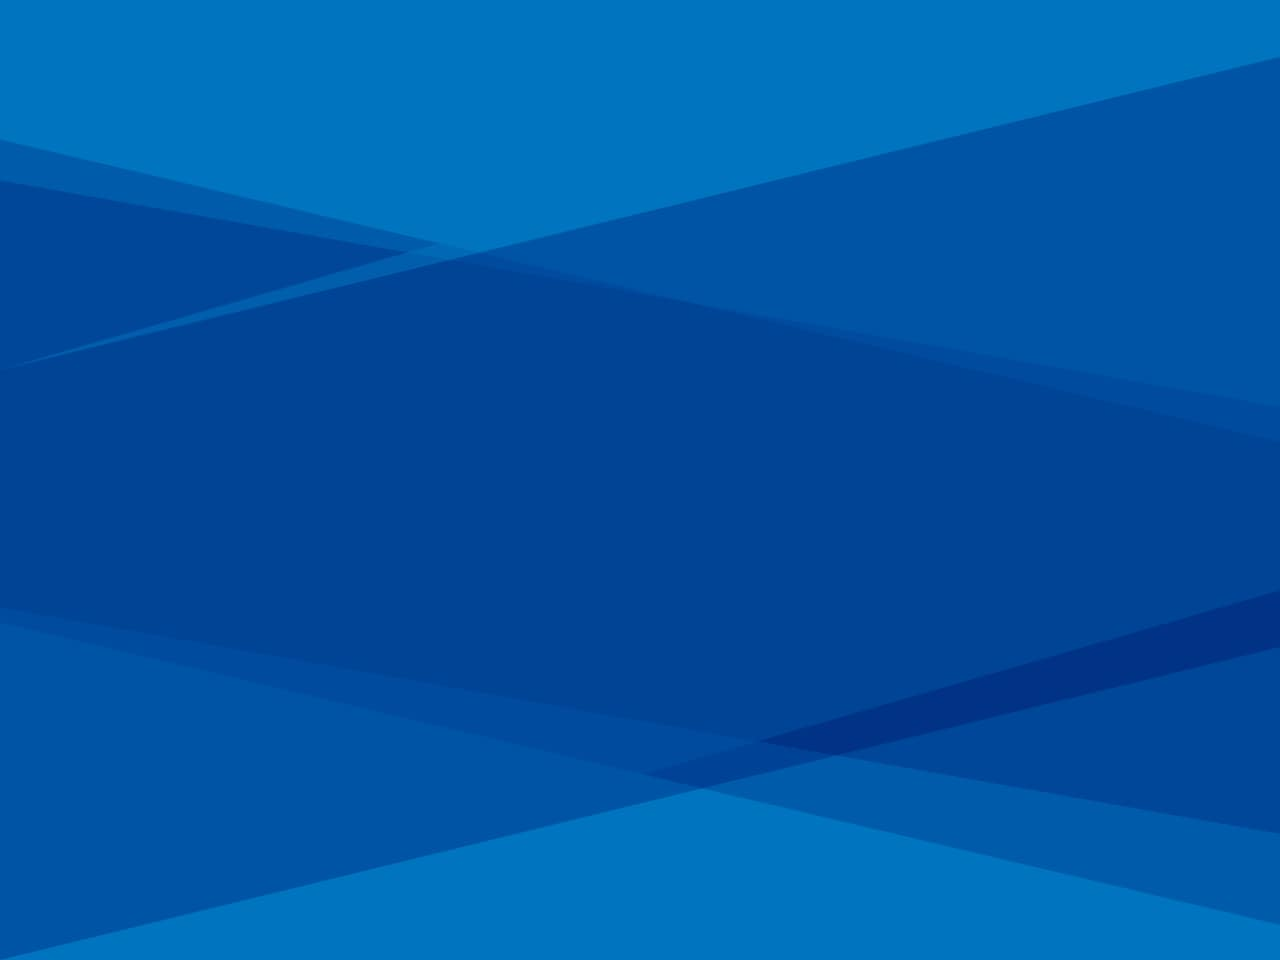 Diagonal screens texture cobalt